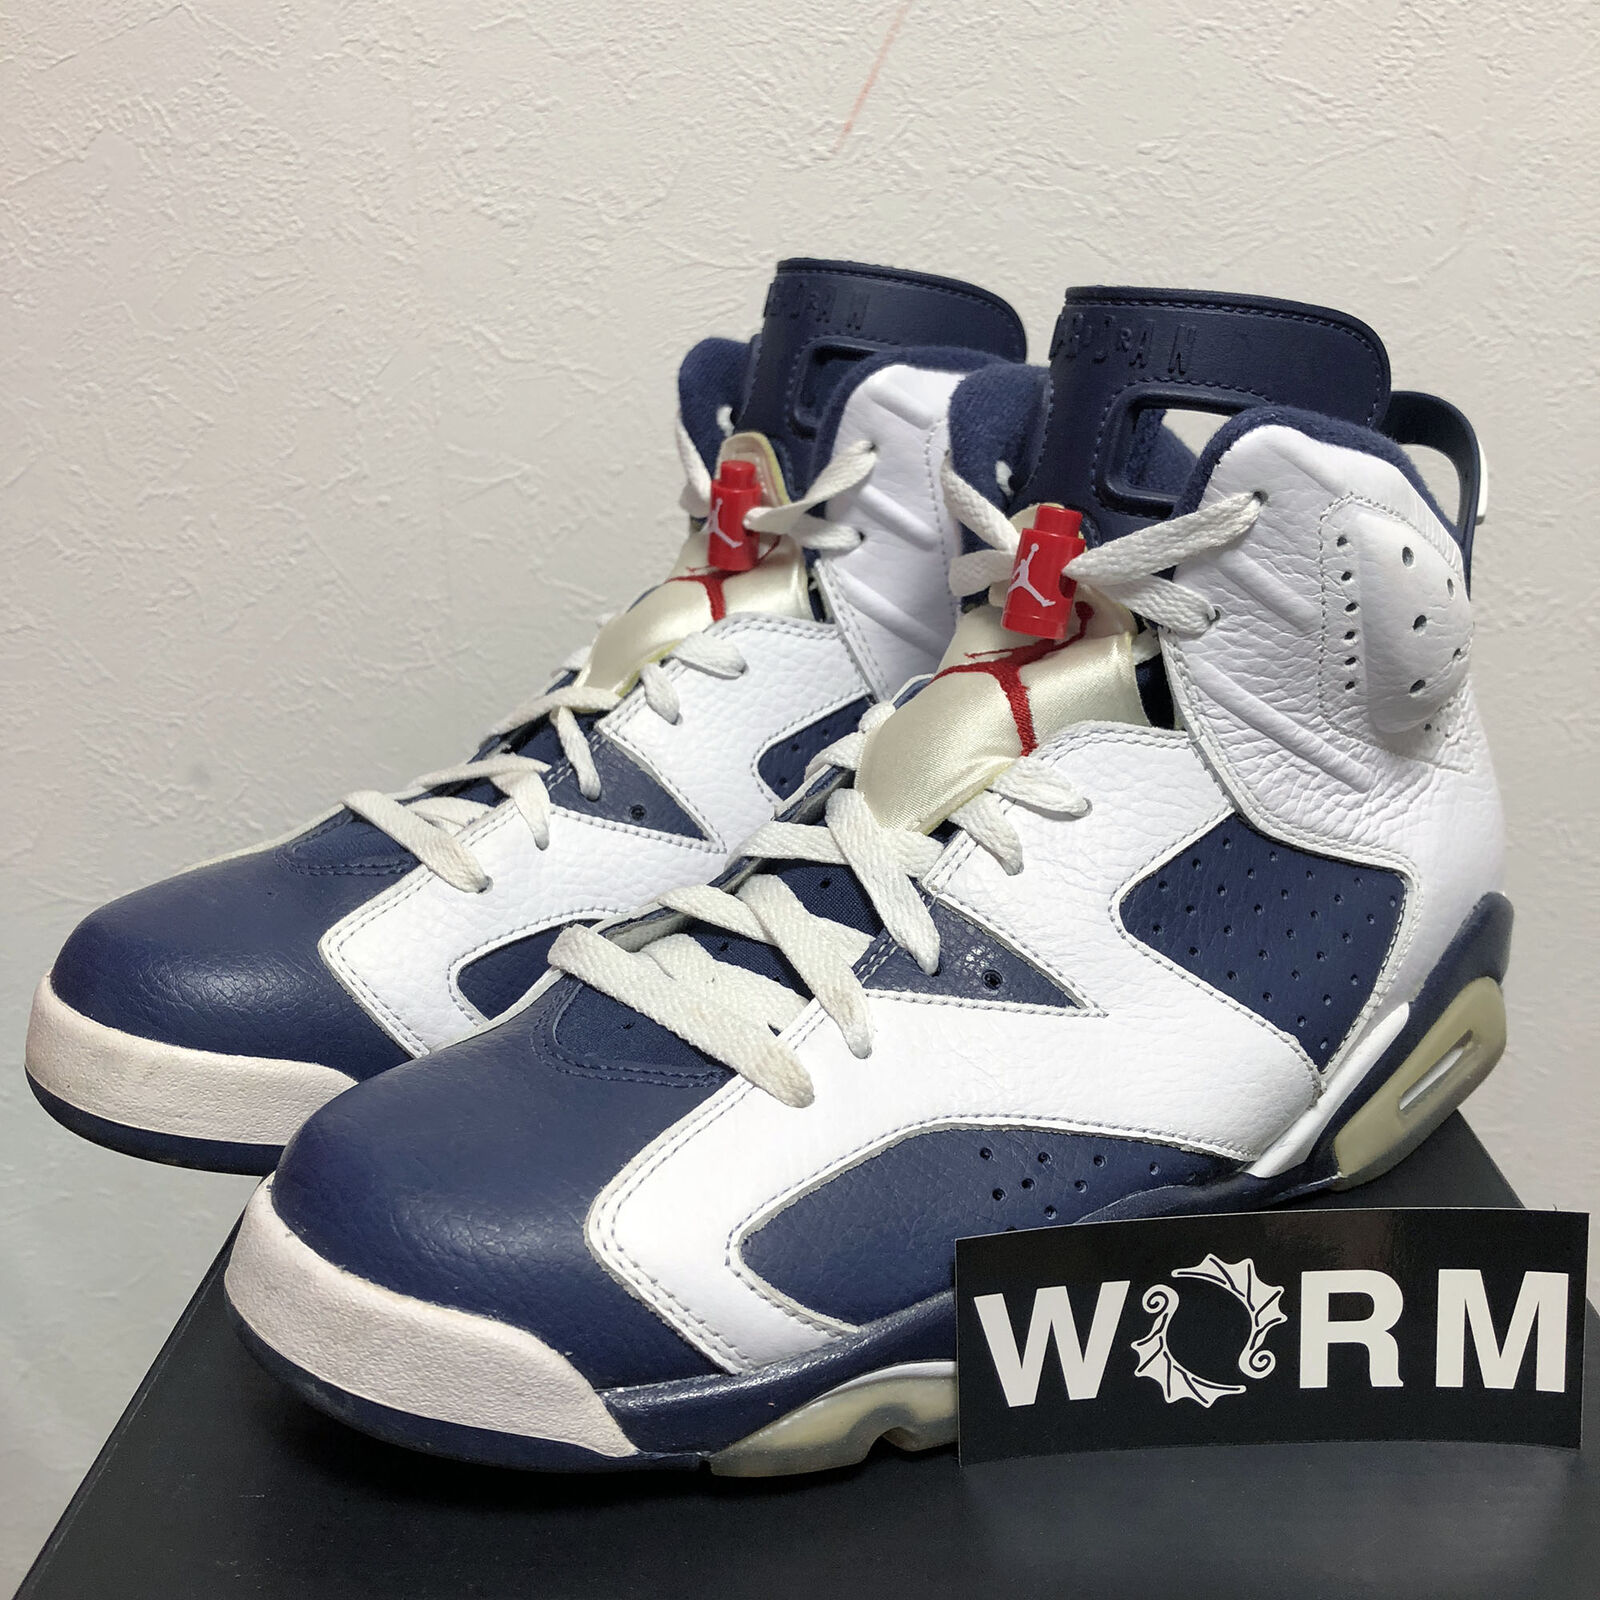 NIKE AIR JORDAN 6 RETRO 384664-130 white midnight navy-vrsty red 10.5us